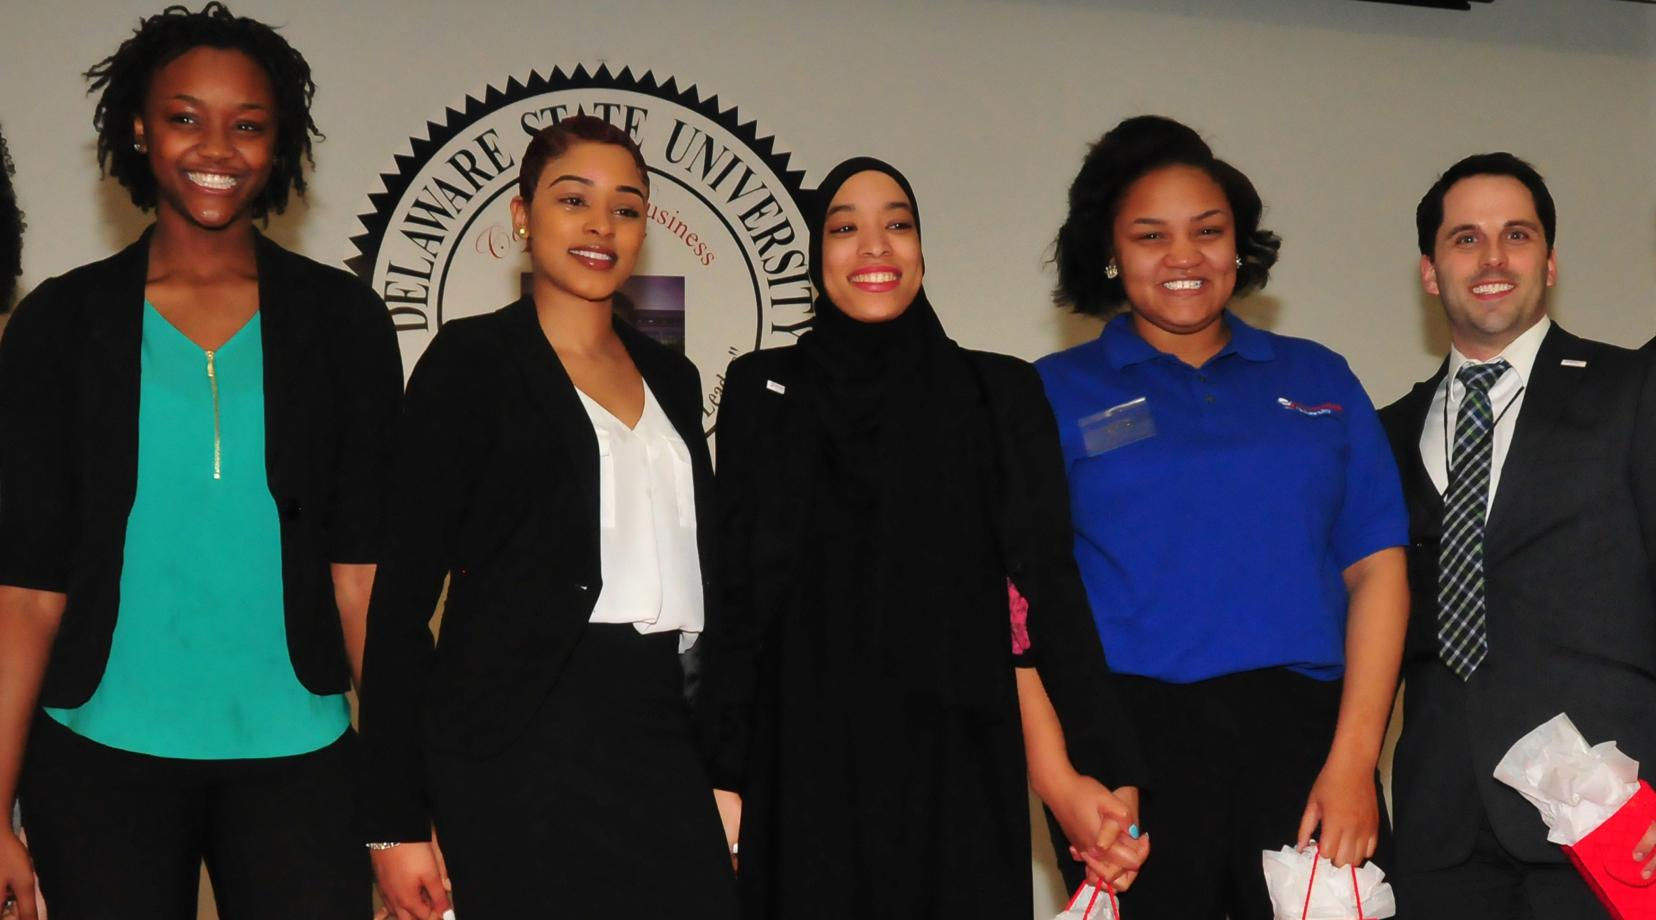 The Business Competition first-place En'Liven team: (l-r) Lashae Eden-Clemons, LaShae Billips, Alexis Sharif, Kia Abrams, along with their coach Brian Passerell. The team came up with the best plan to address homelessness.